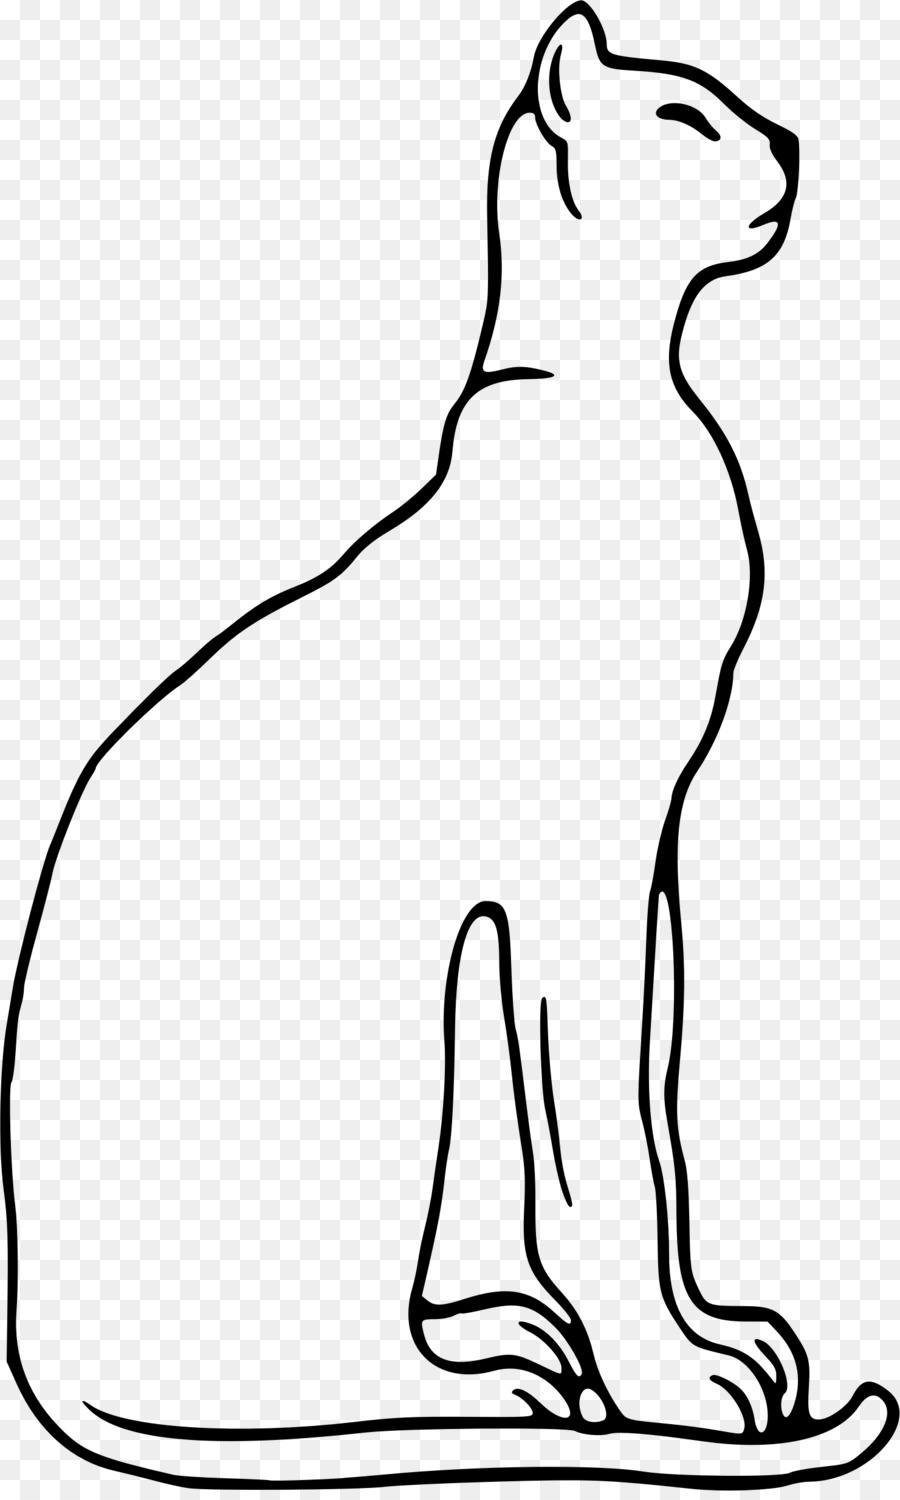 900x1500 Drawing, Pet, Mouse, Transparent Png Image Clipart Free Download